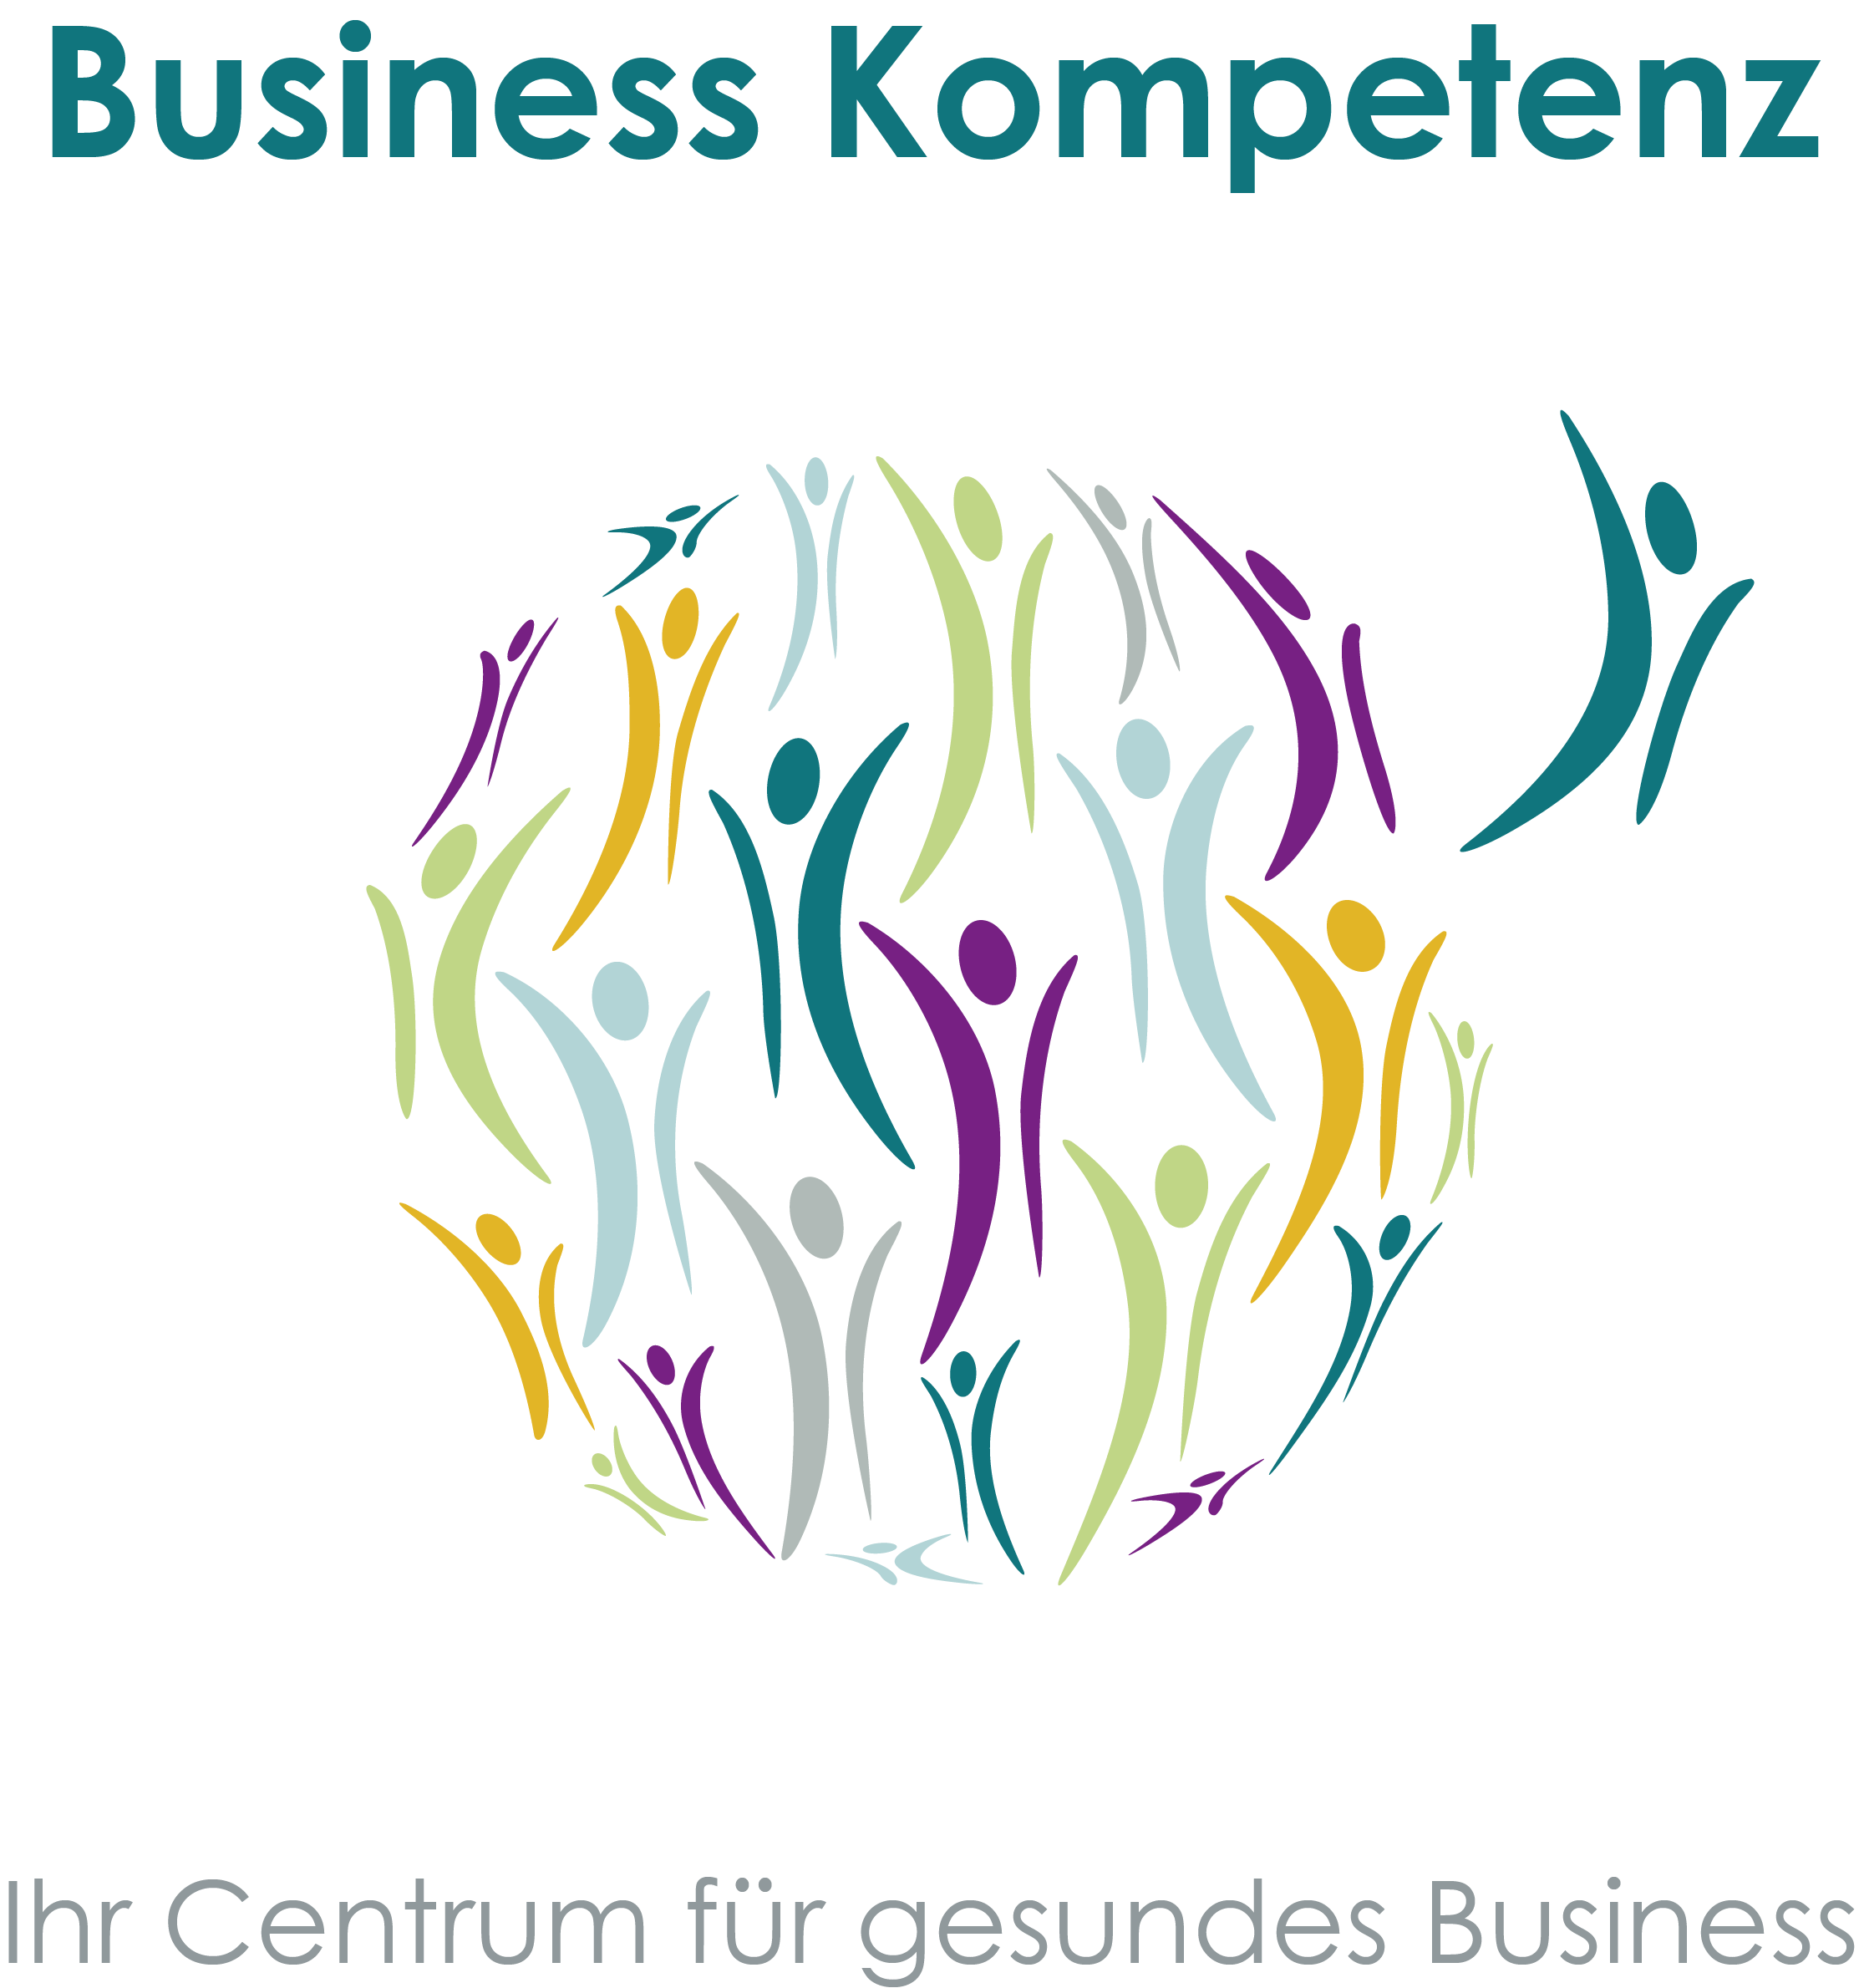 Business Kompetenz GbR